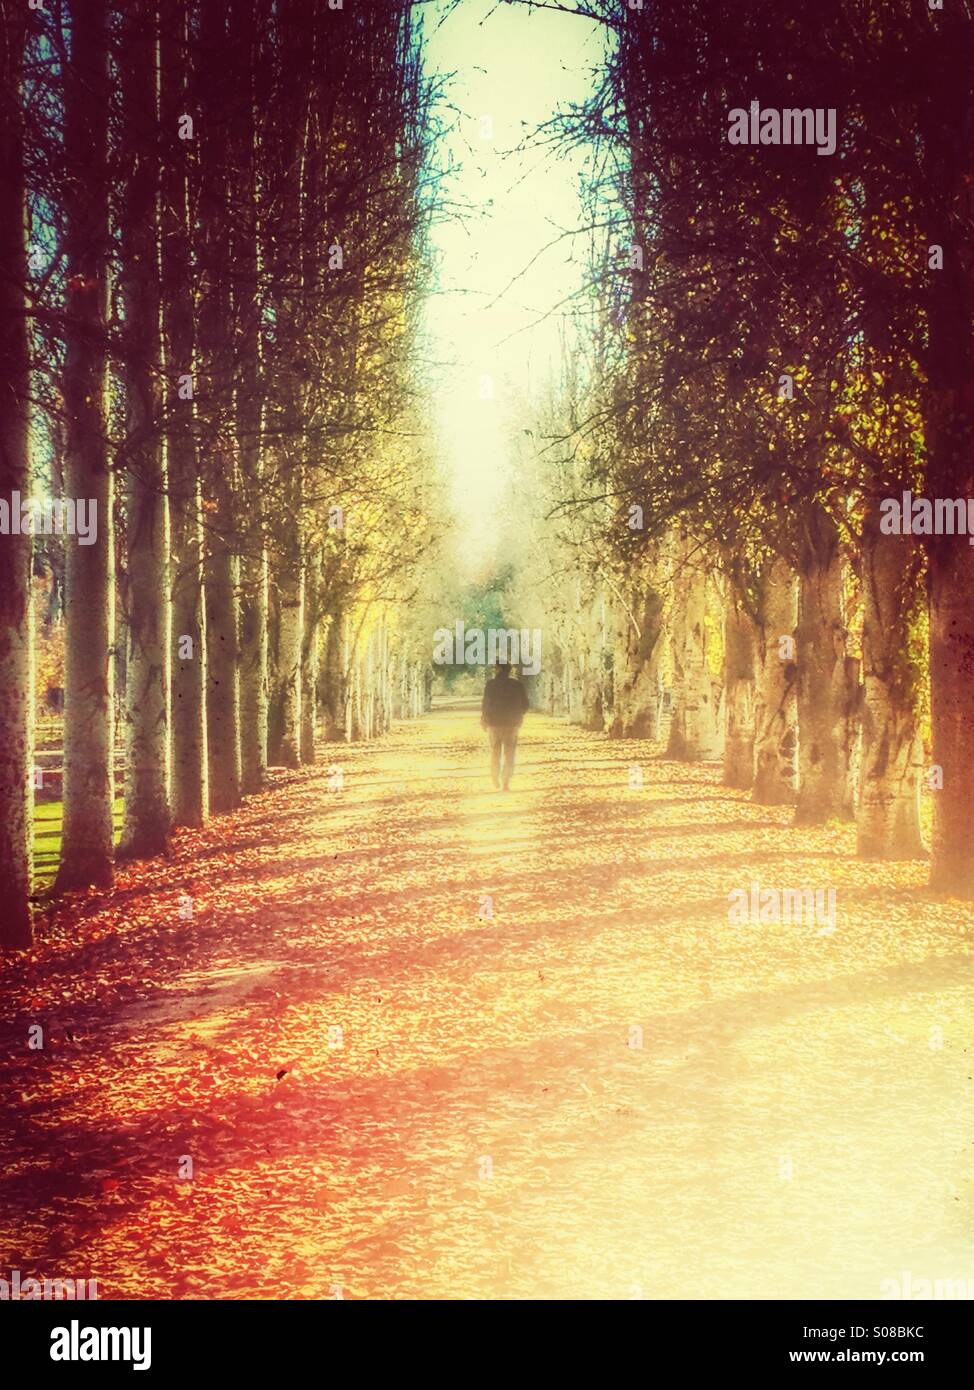 Figure walking through an avenue of trees - Stock Image